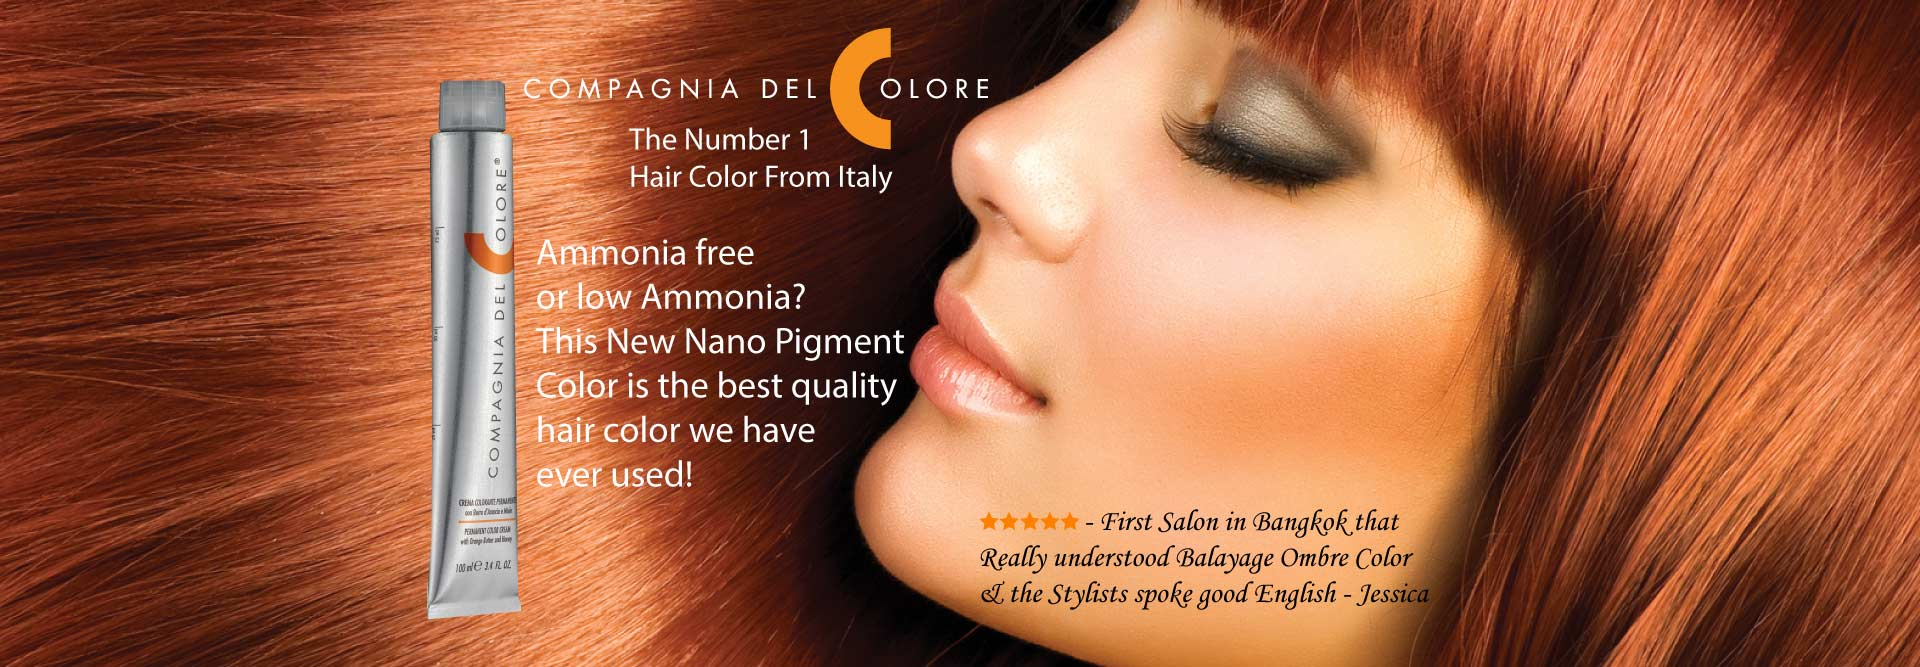 italy hair color bangkok